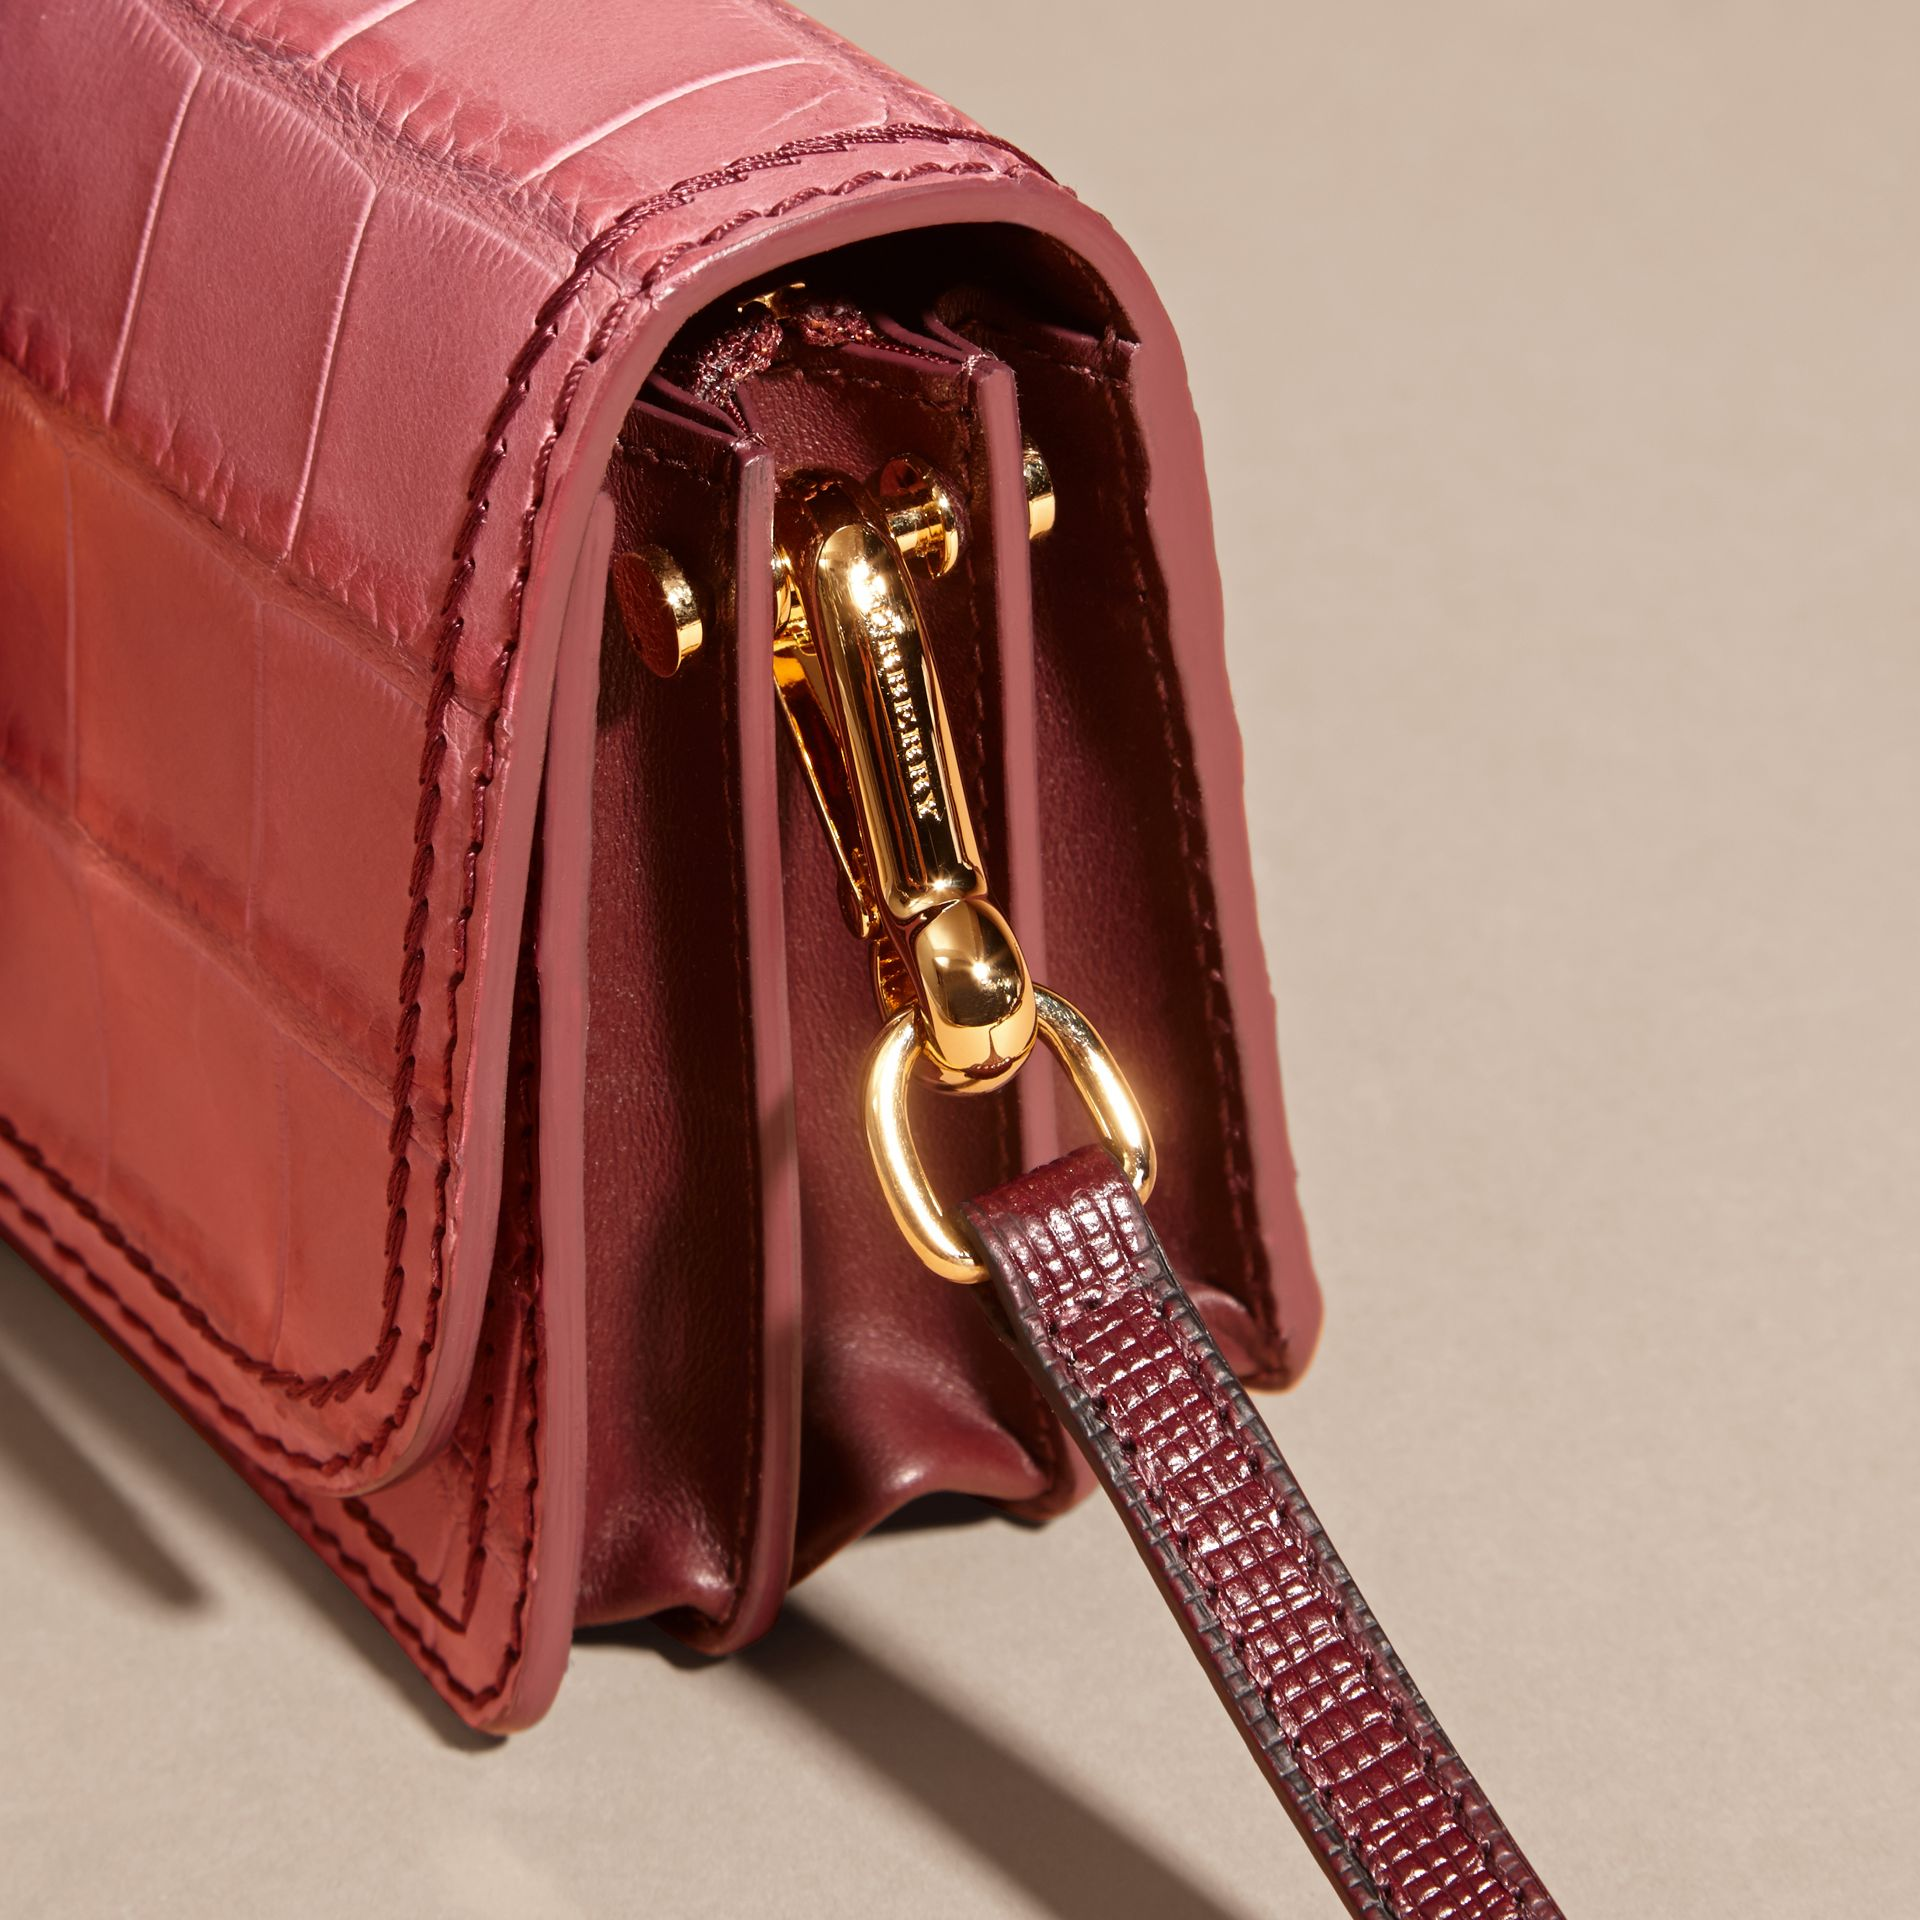 The Small Buckle Bag in Alligator and Leather in Dusky Pink/ Burgundy - Women | Burberry - gallery image 2